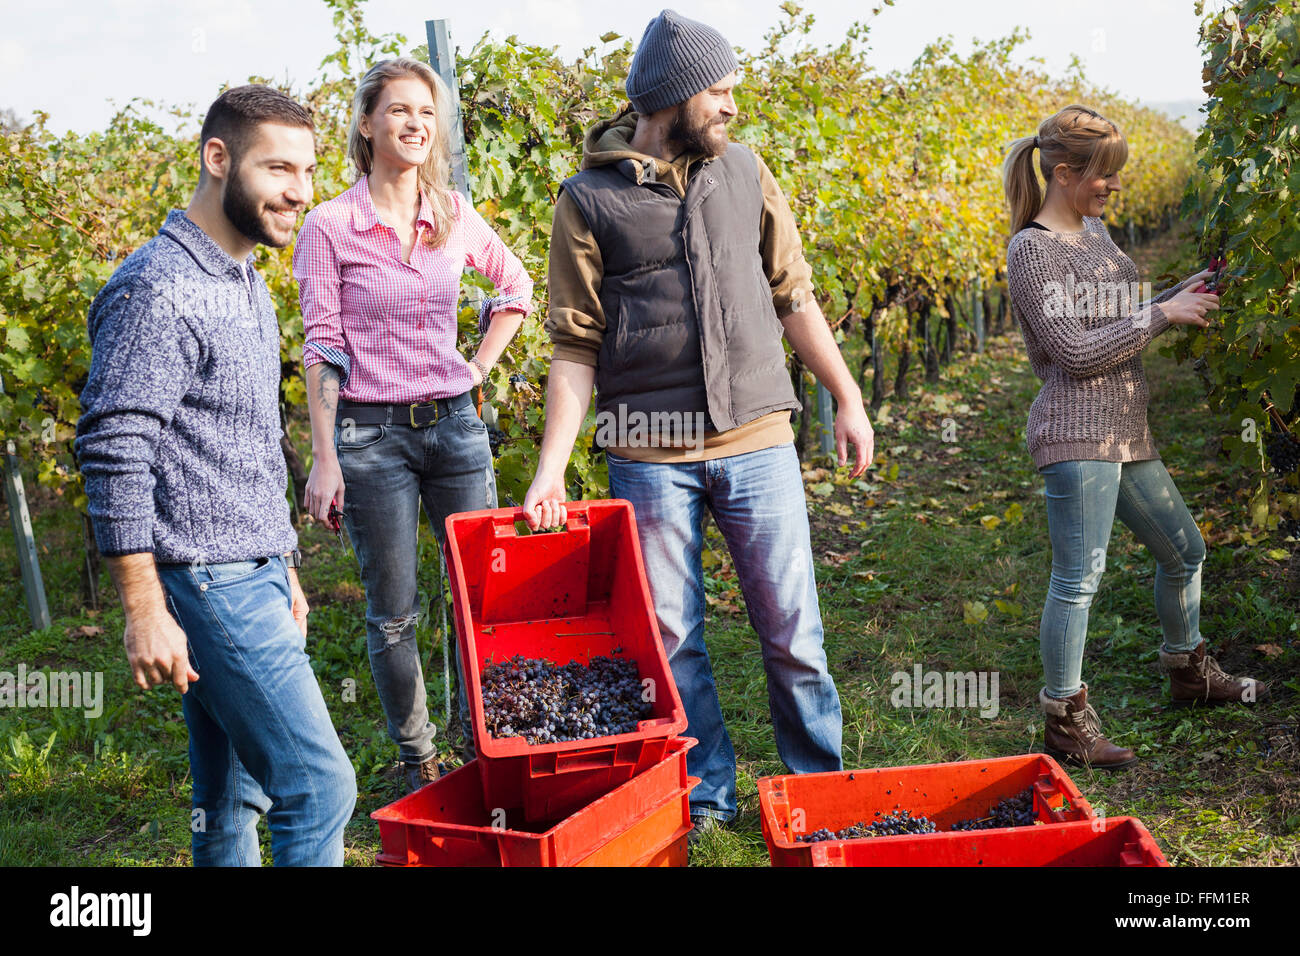 Friends unloading grapes into crates in vineyard - Stock Image